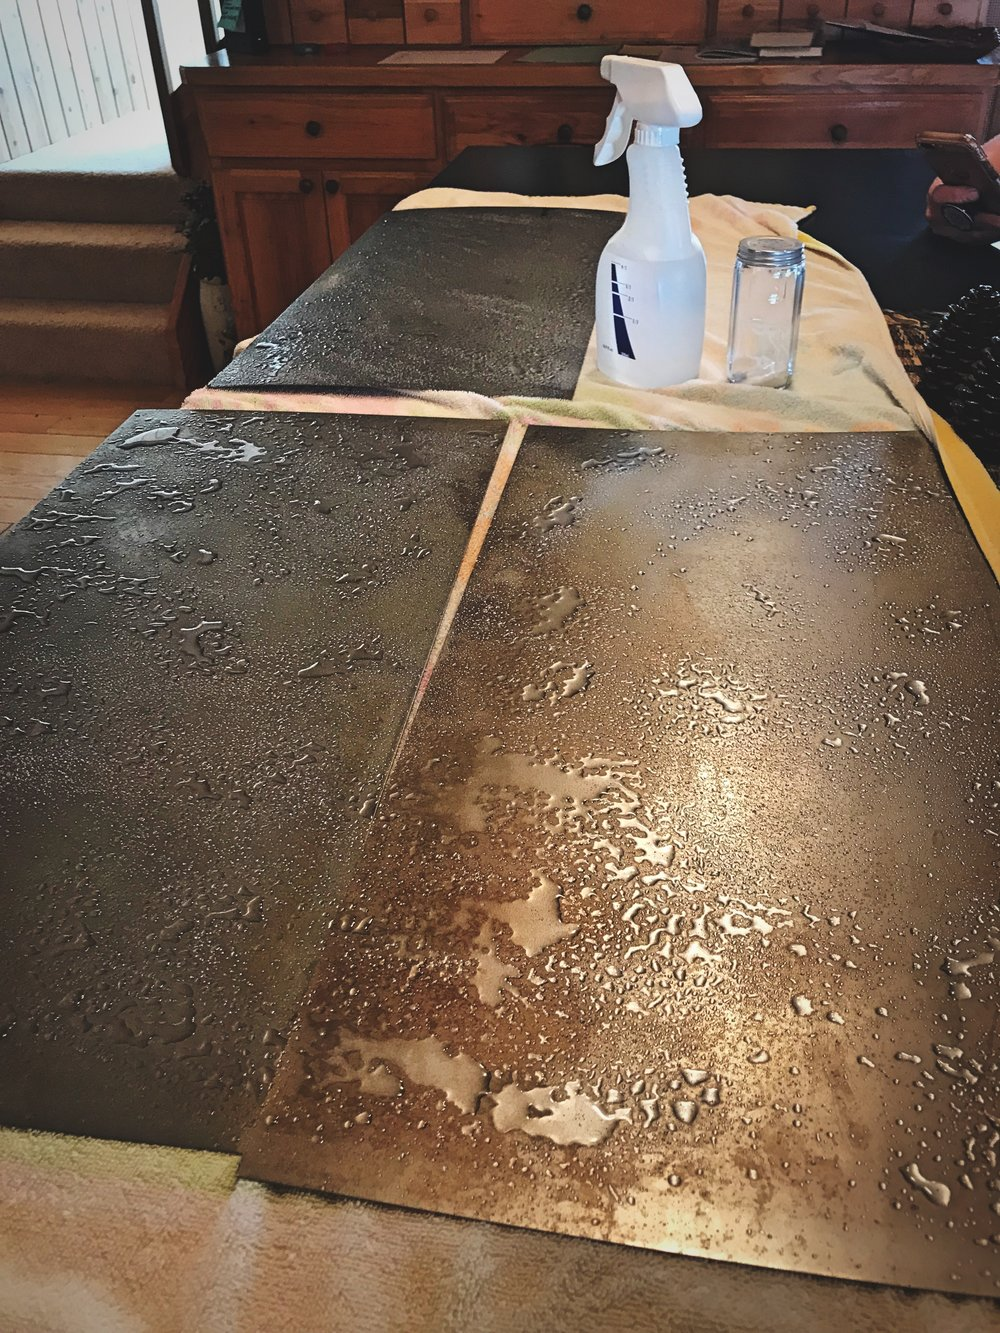 To create a rusty patina for our backsplash, we catalyzed the oxidation using vinegar and salt.